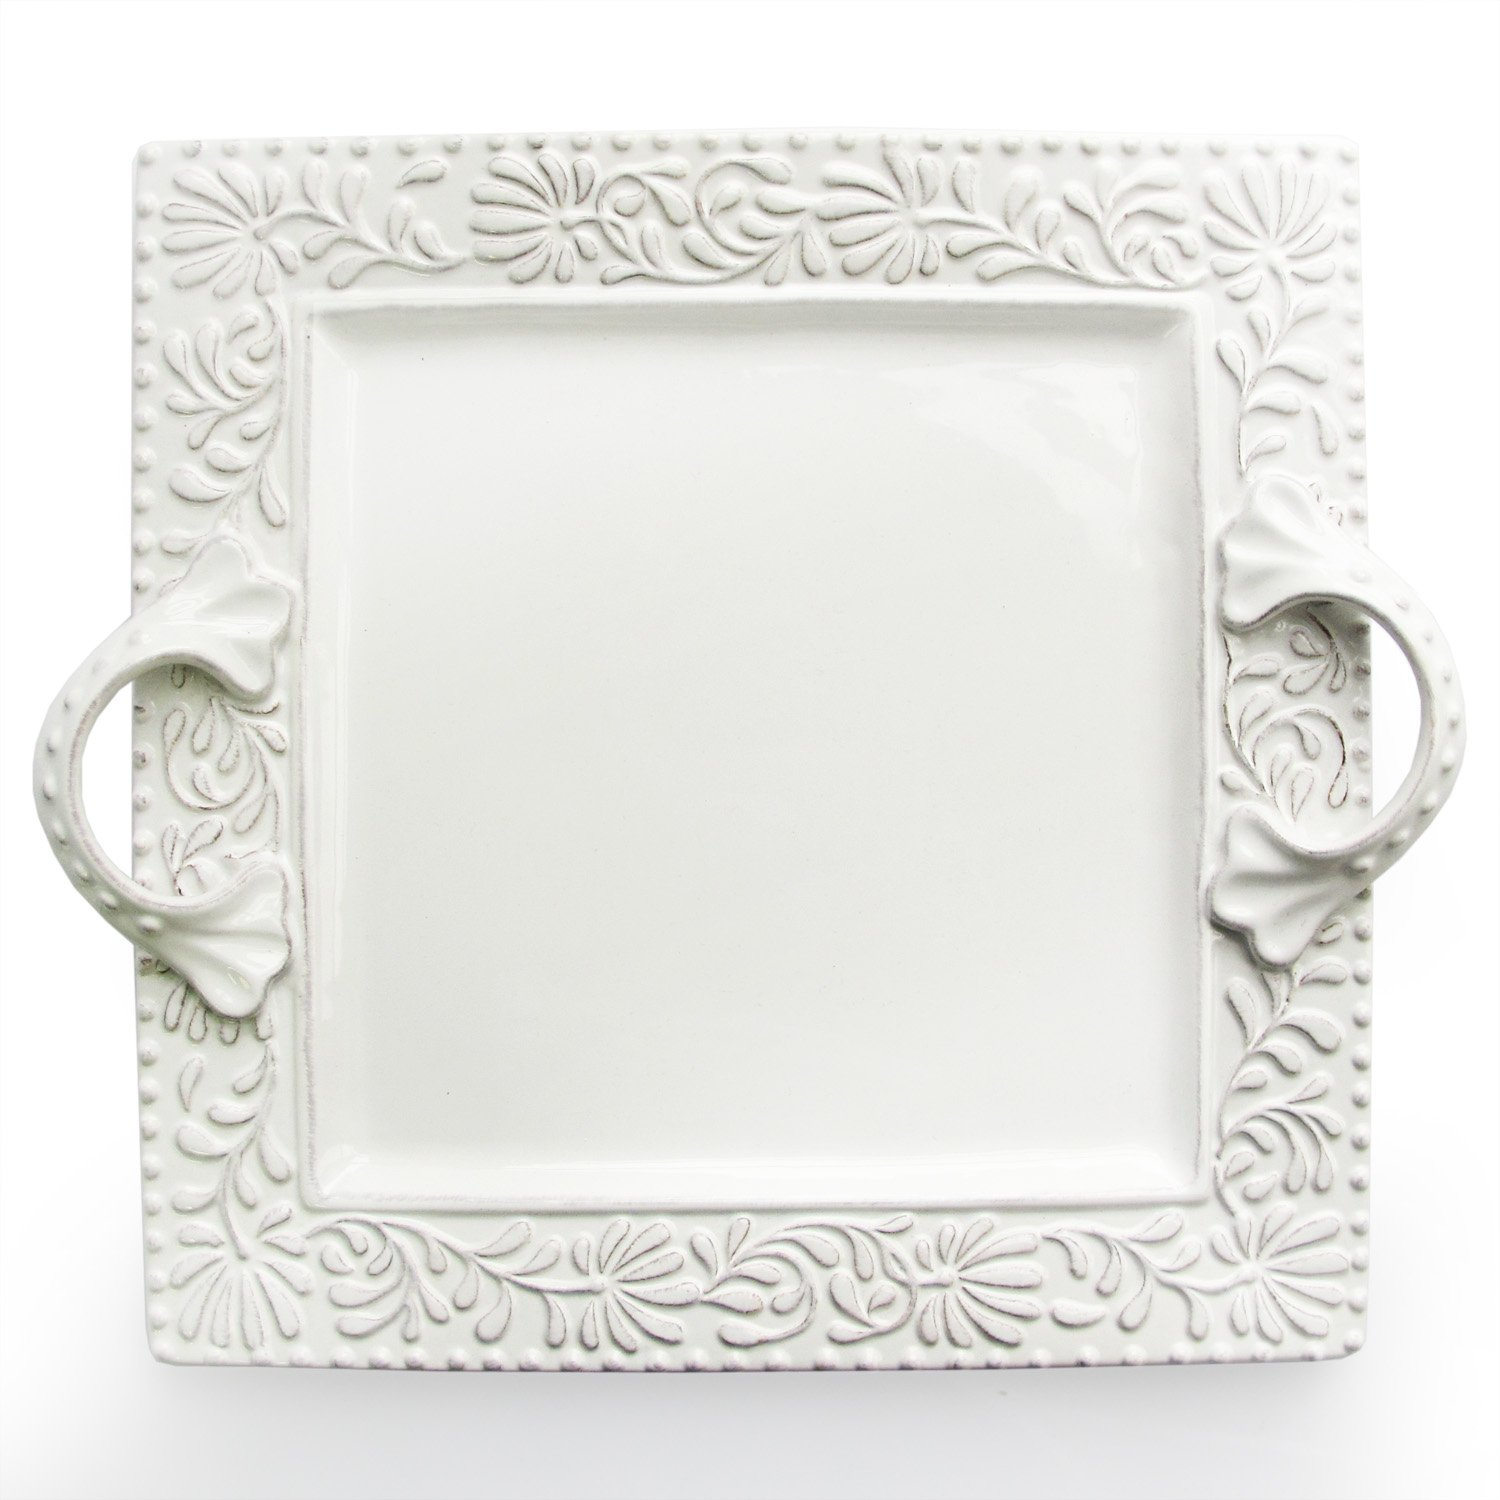 Christmas Tablescape Décor - White square earthenware Bianca Leaf embossed handled platter by American Atelier